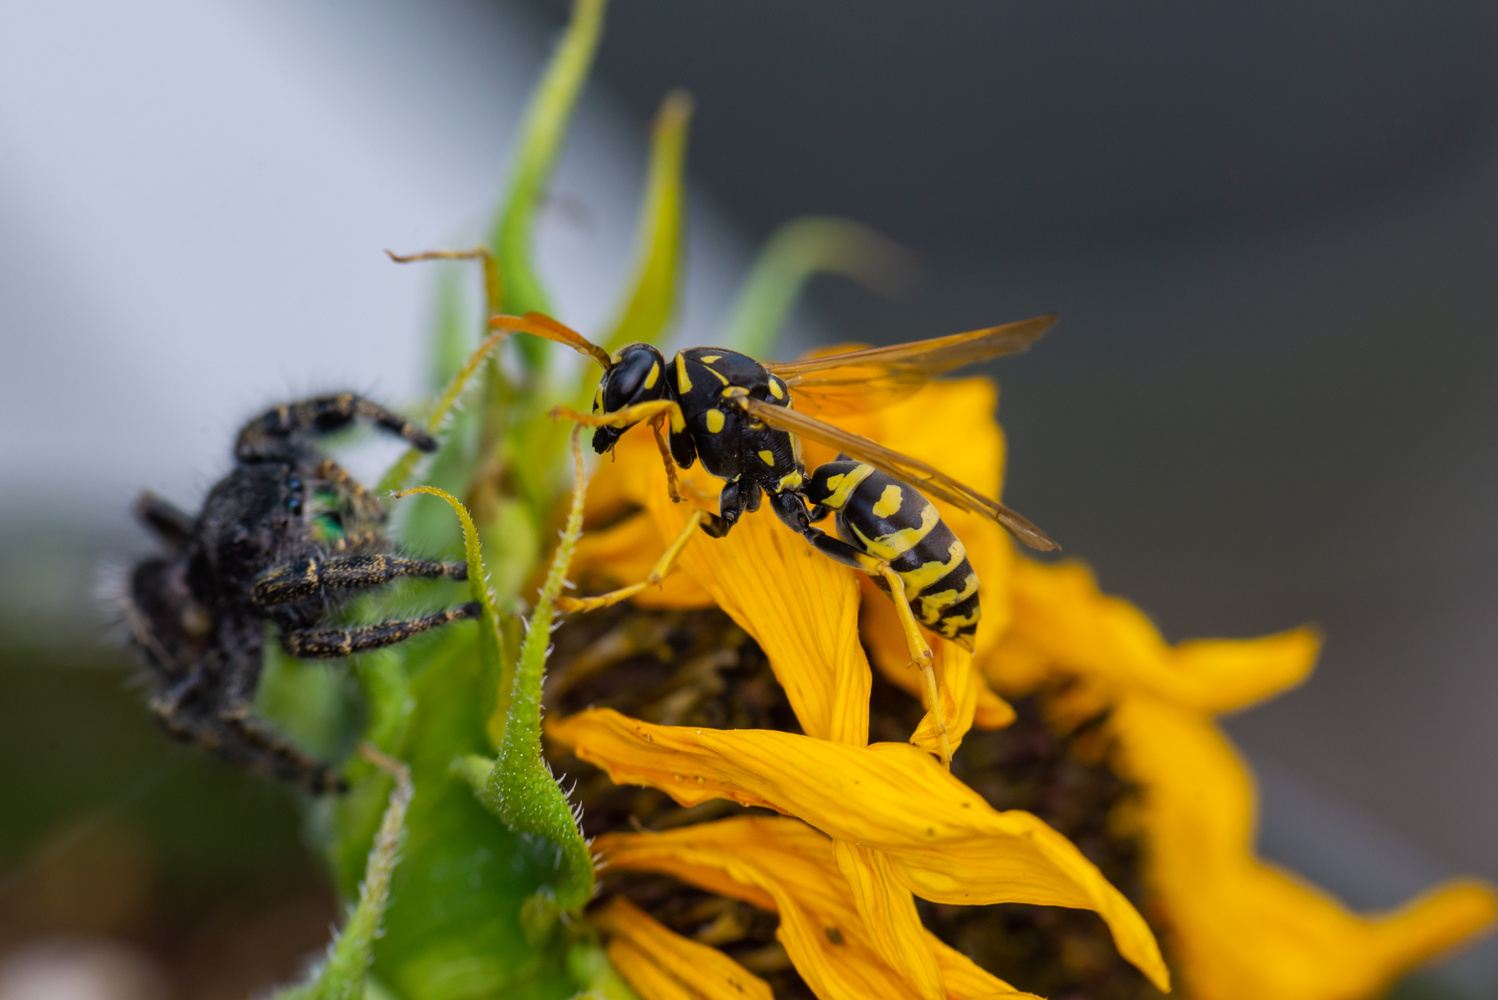 Spider Attacking a Wasp by Ryan Rees